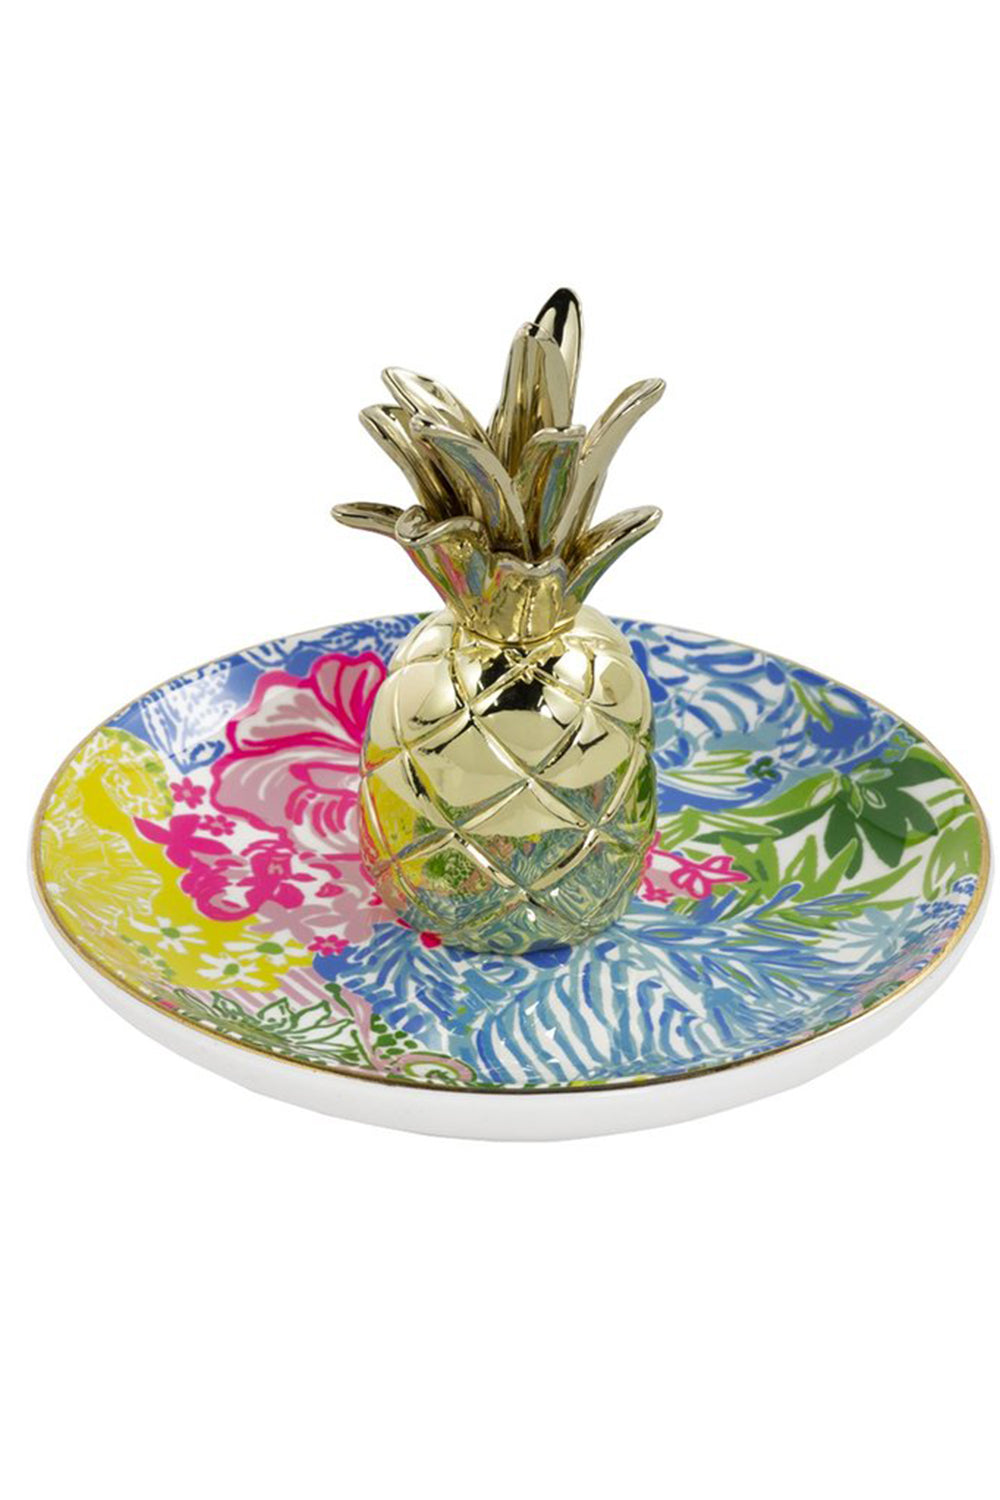 Lilly Ring Holder - Cheek to Cheek